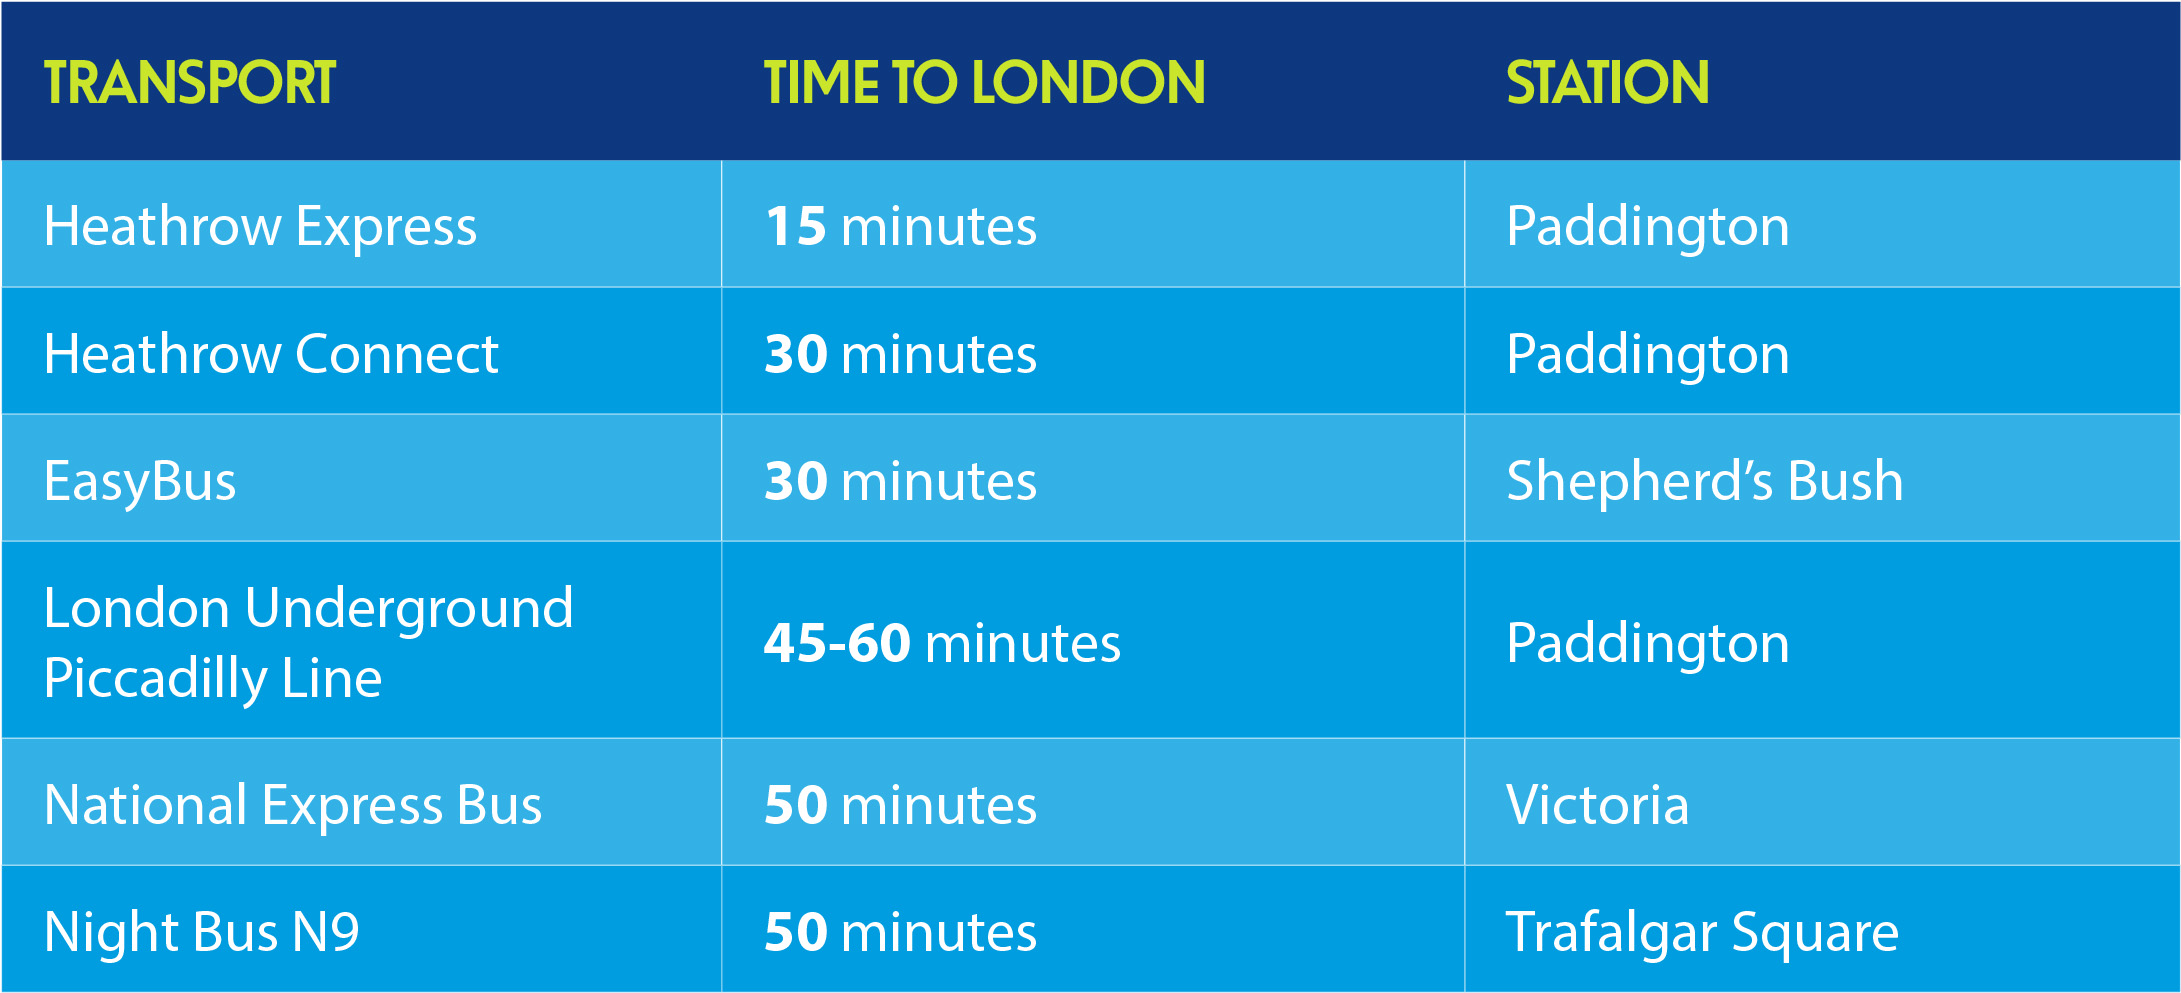 time it takes from heathrow to london using public transport